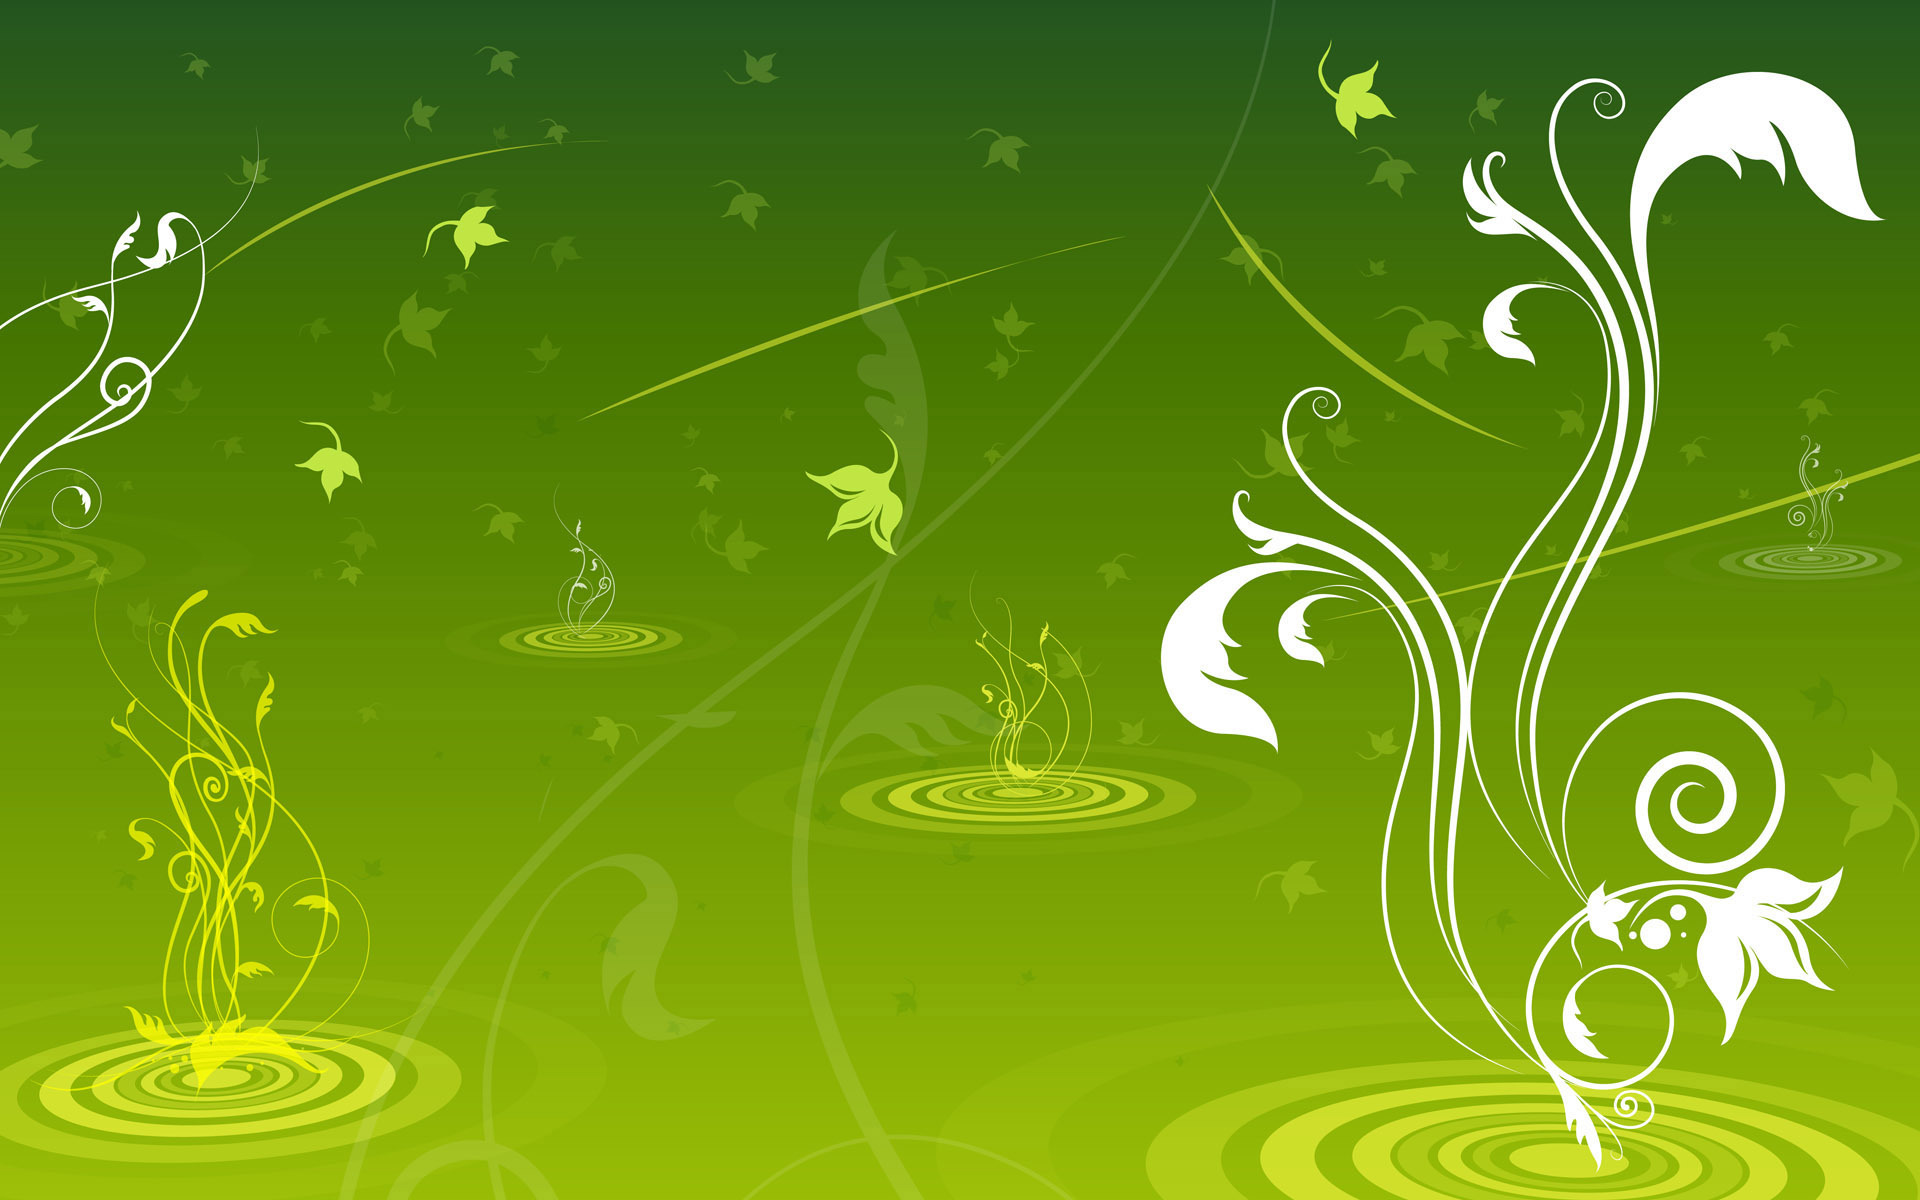 Green Images Swirls Wallpaper HD And Background Photos